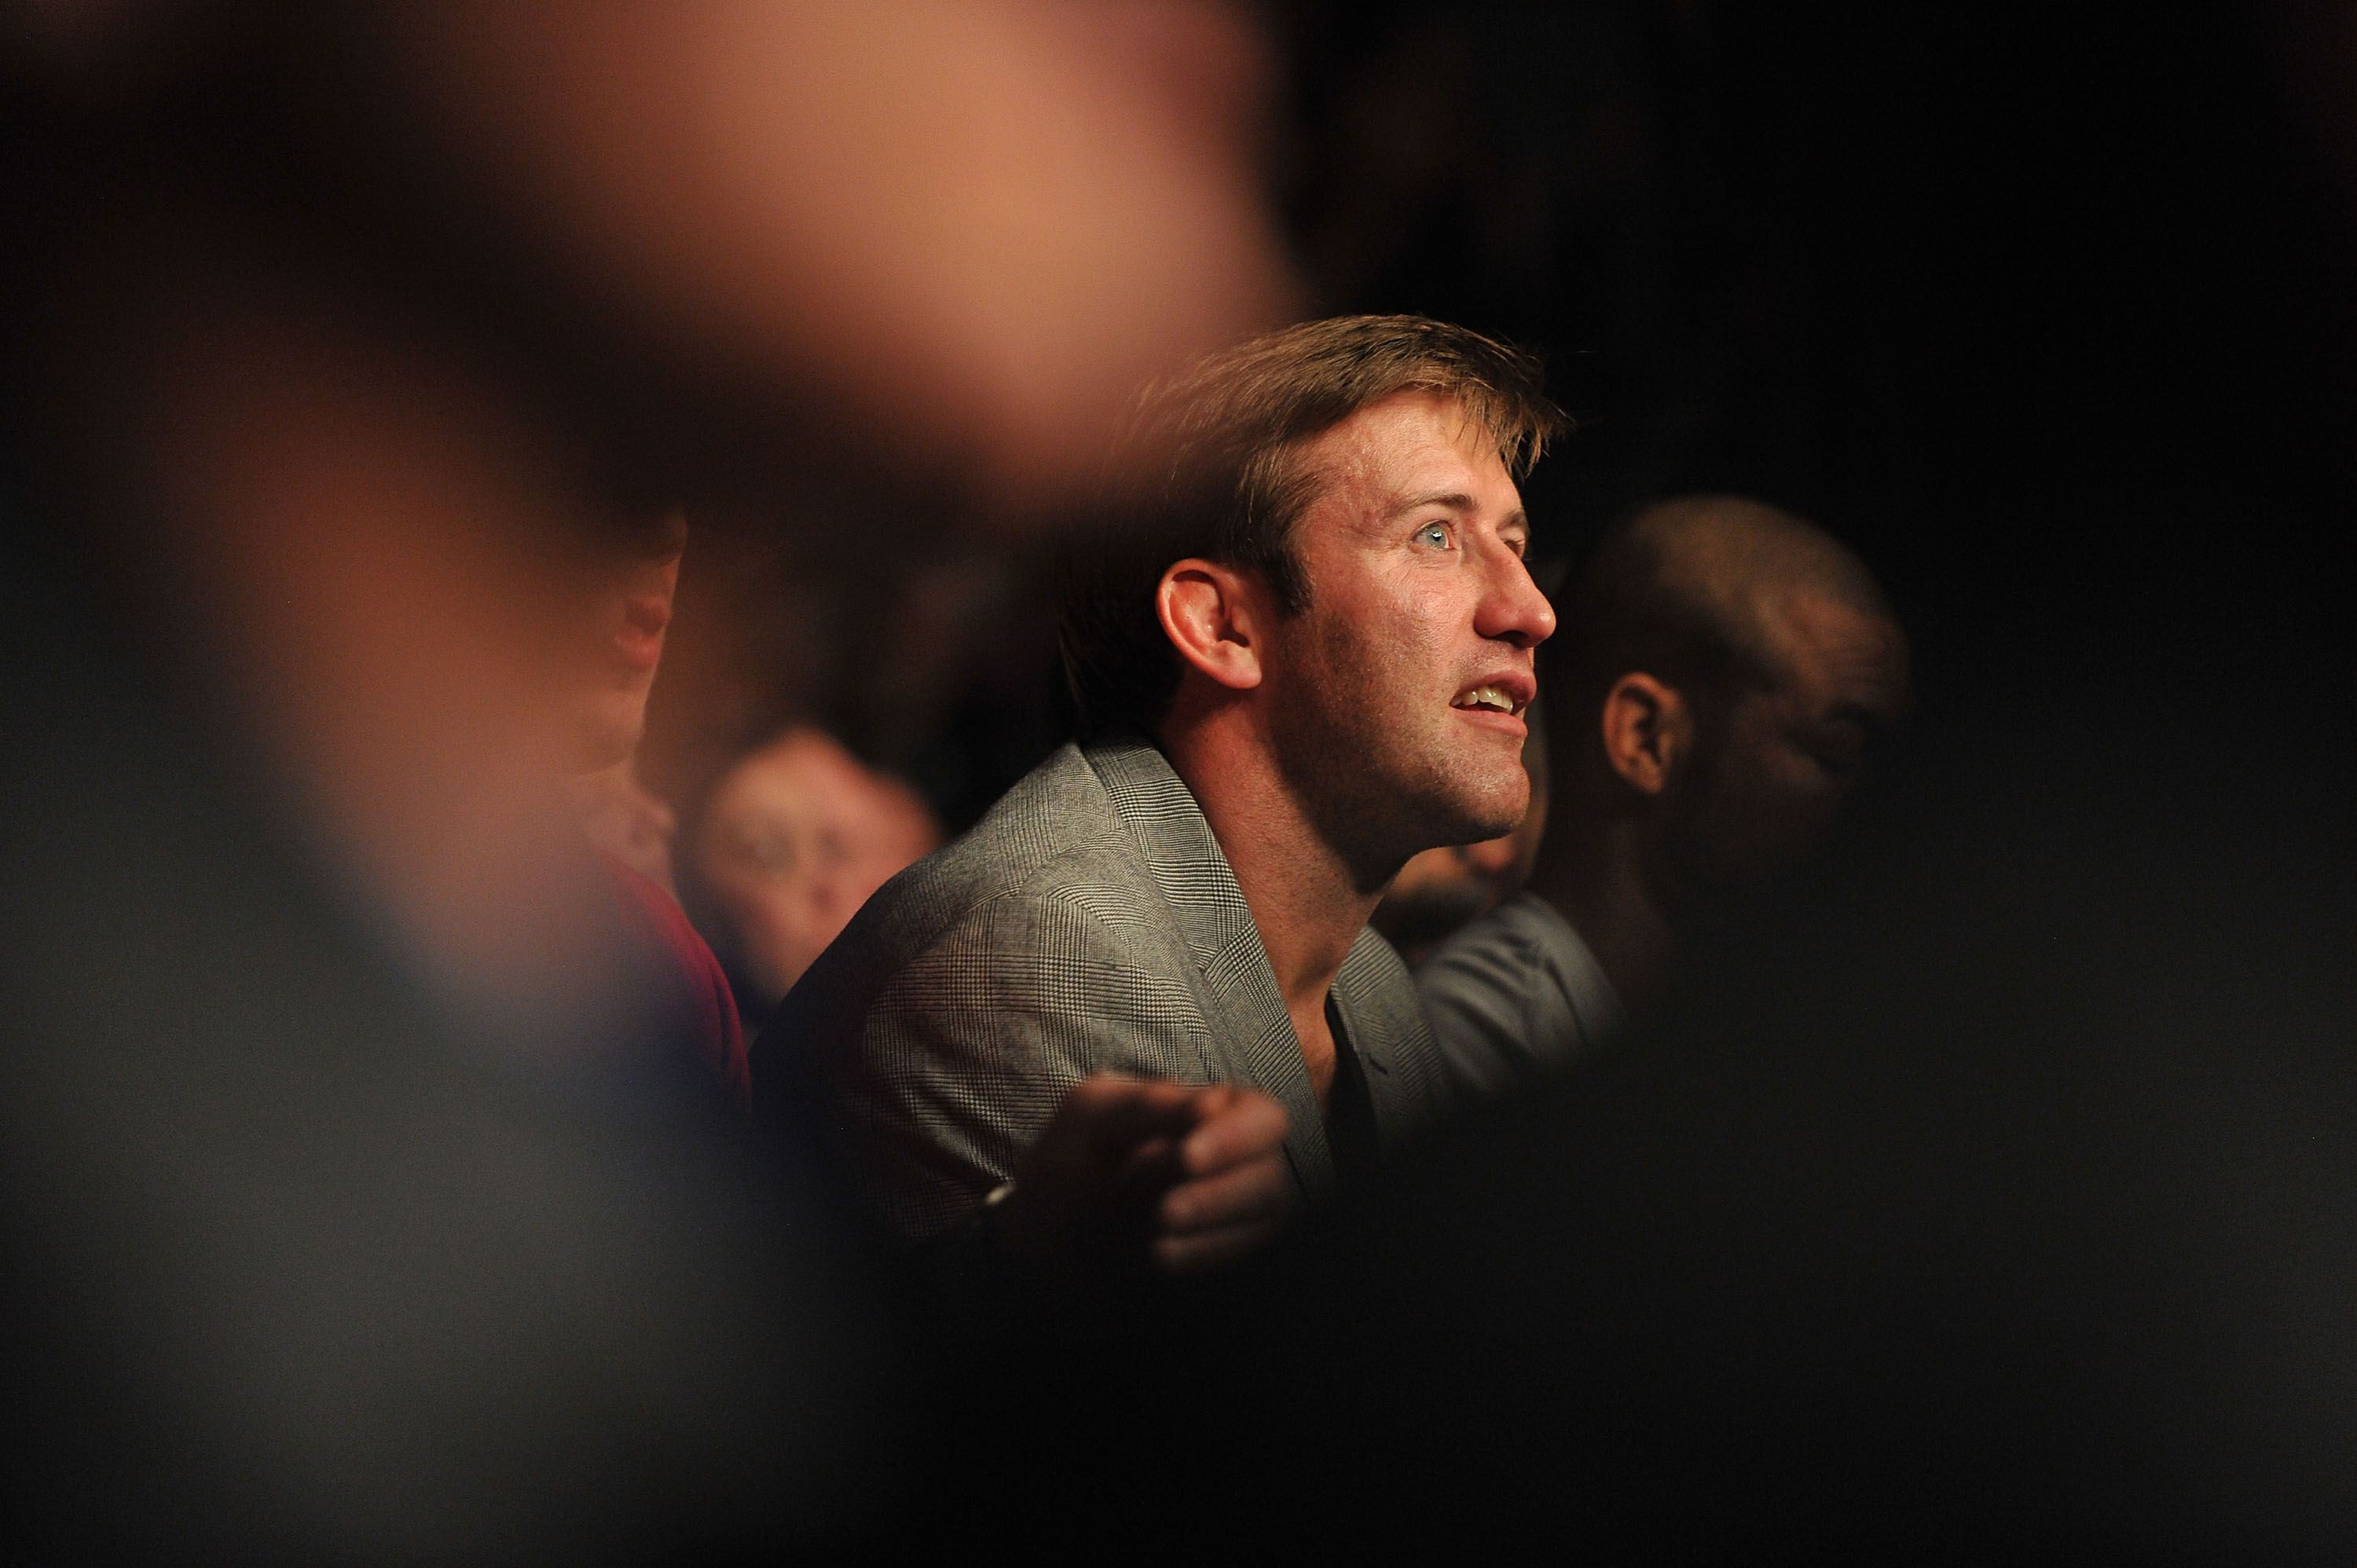 Stephan Bonnar looks on from the crowd during UFC 167.